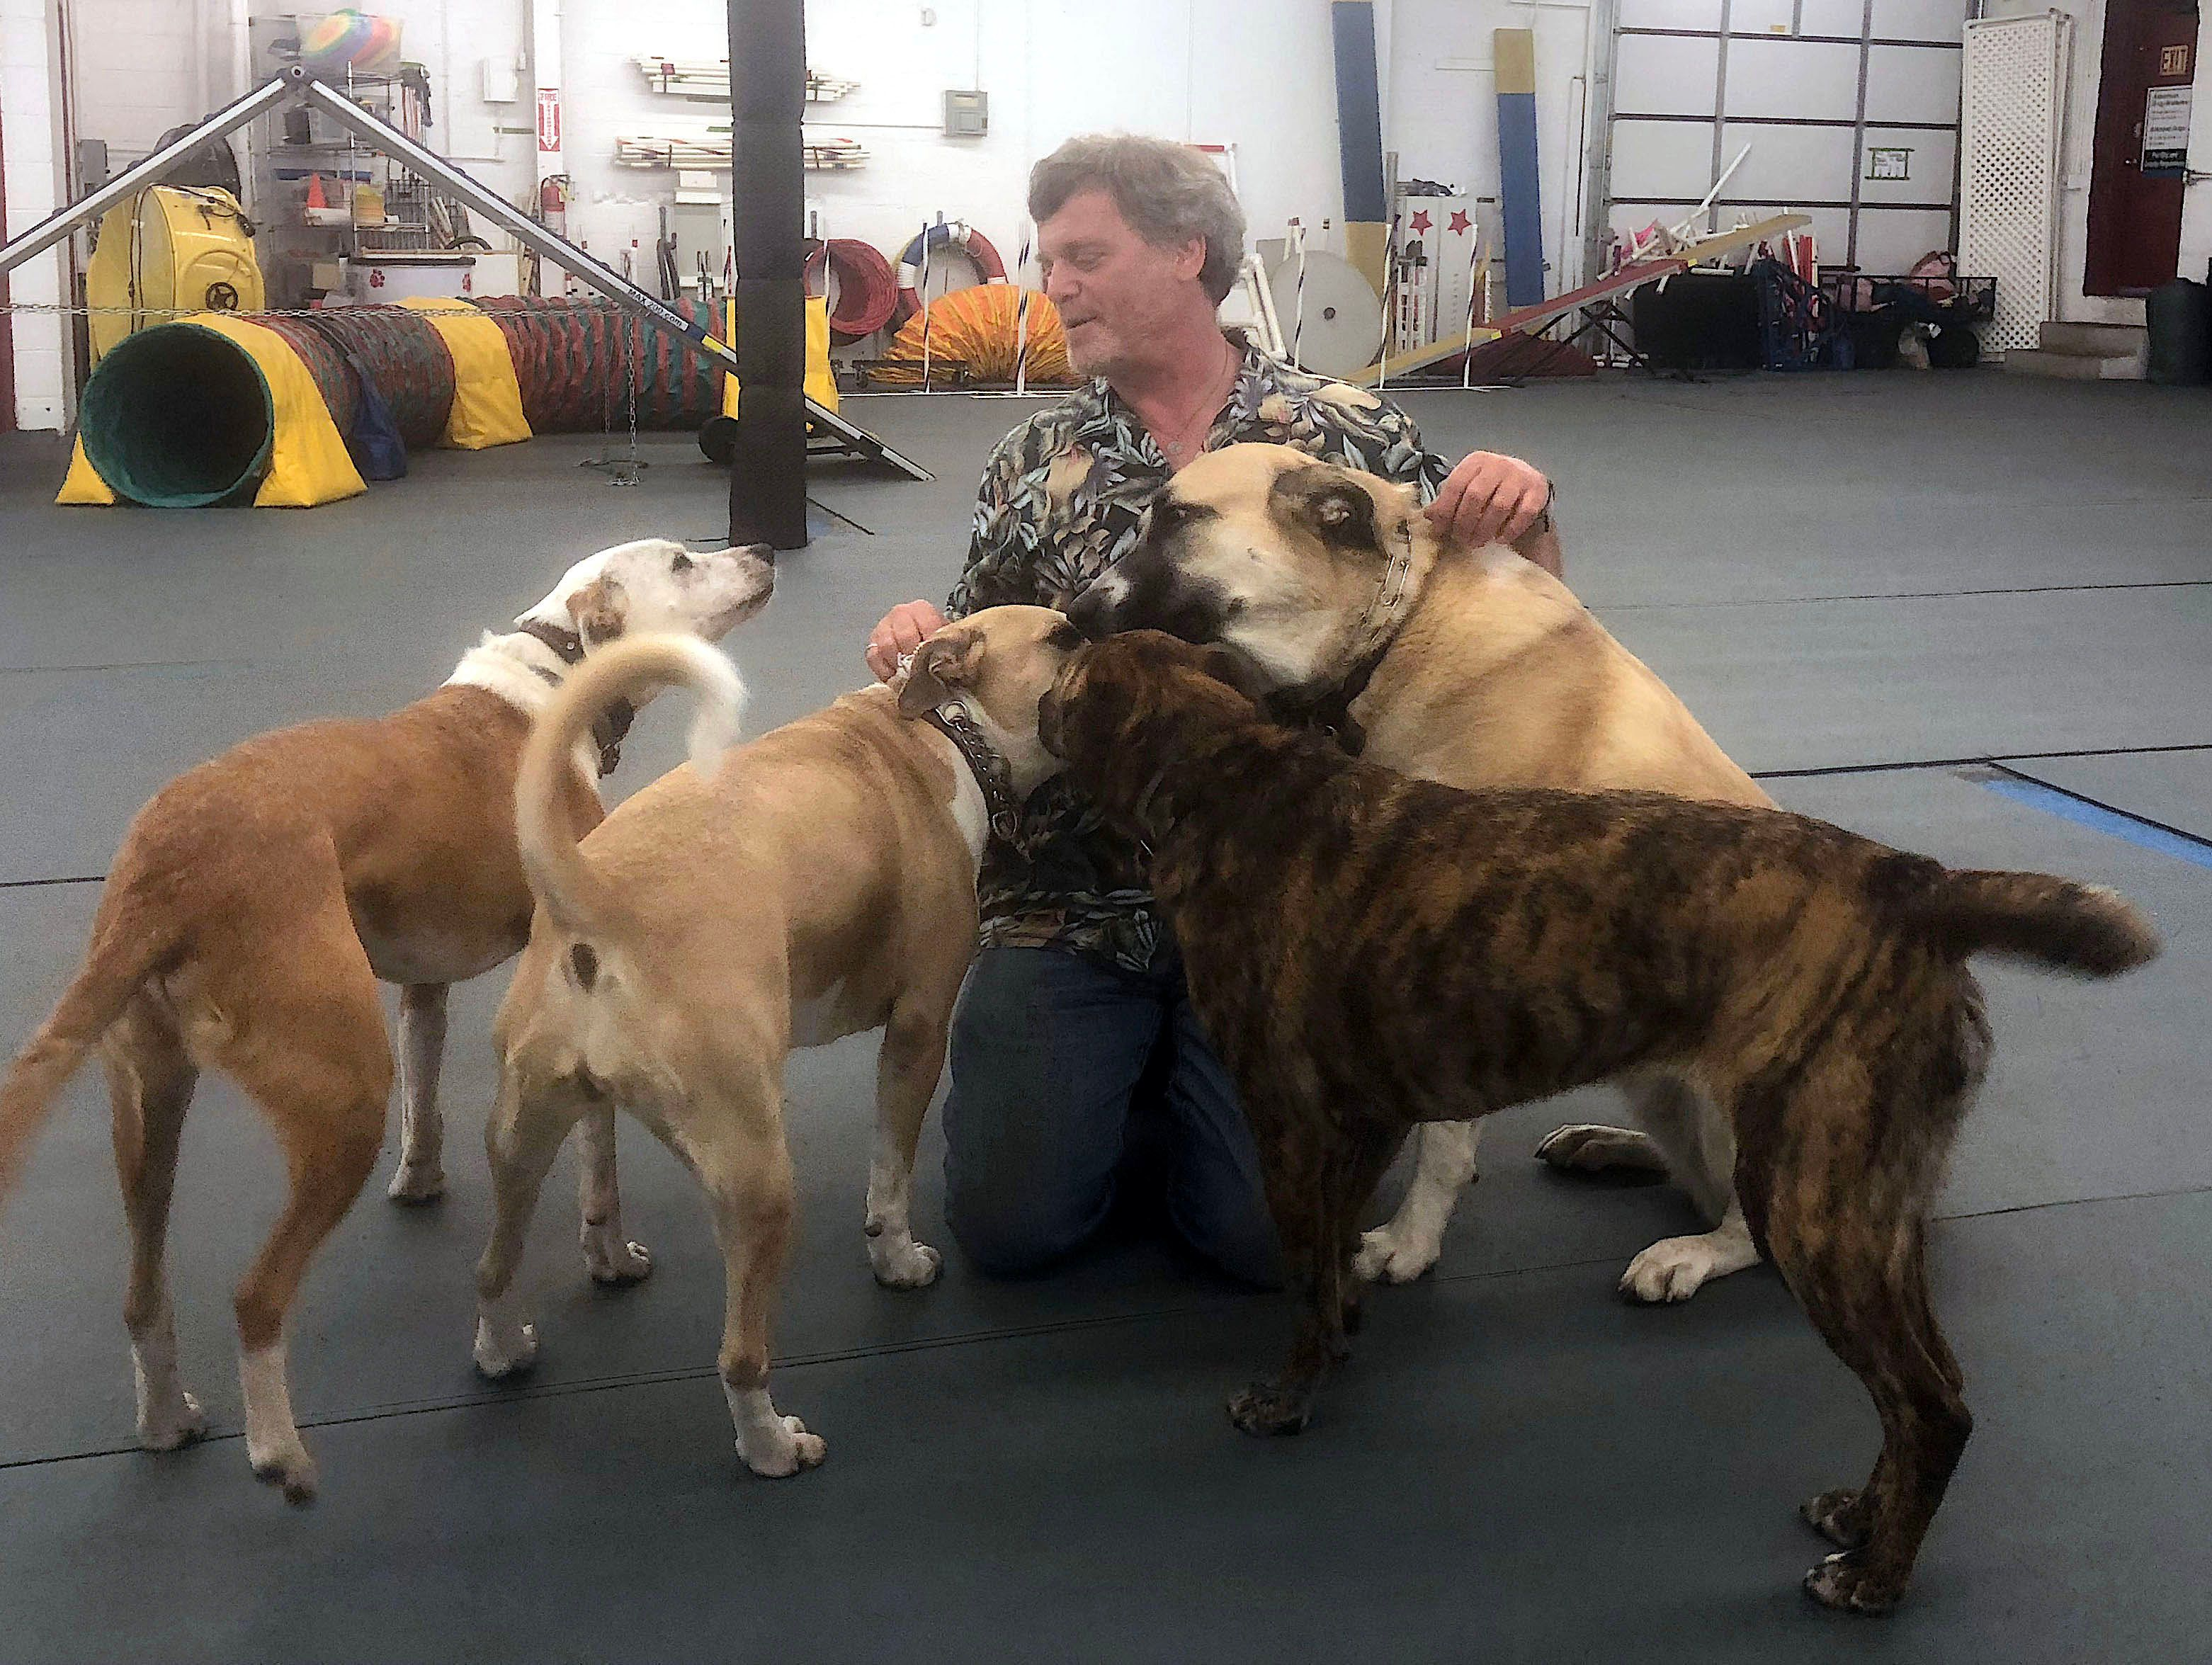 Animal behaviorist Corey Cohen says dogs can be traumatized by the sound of fireworks.